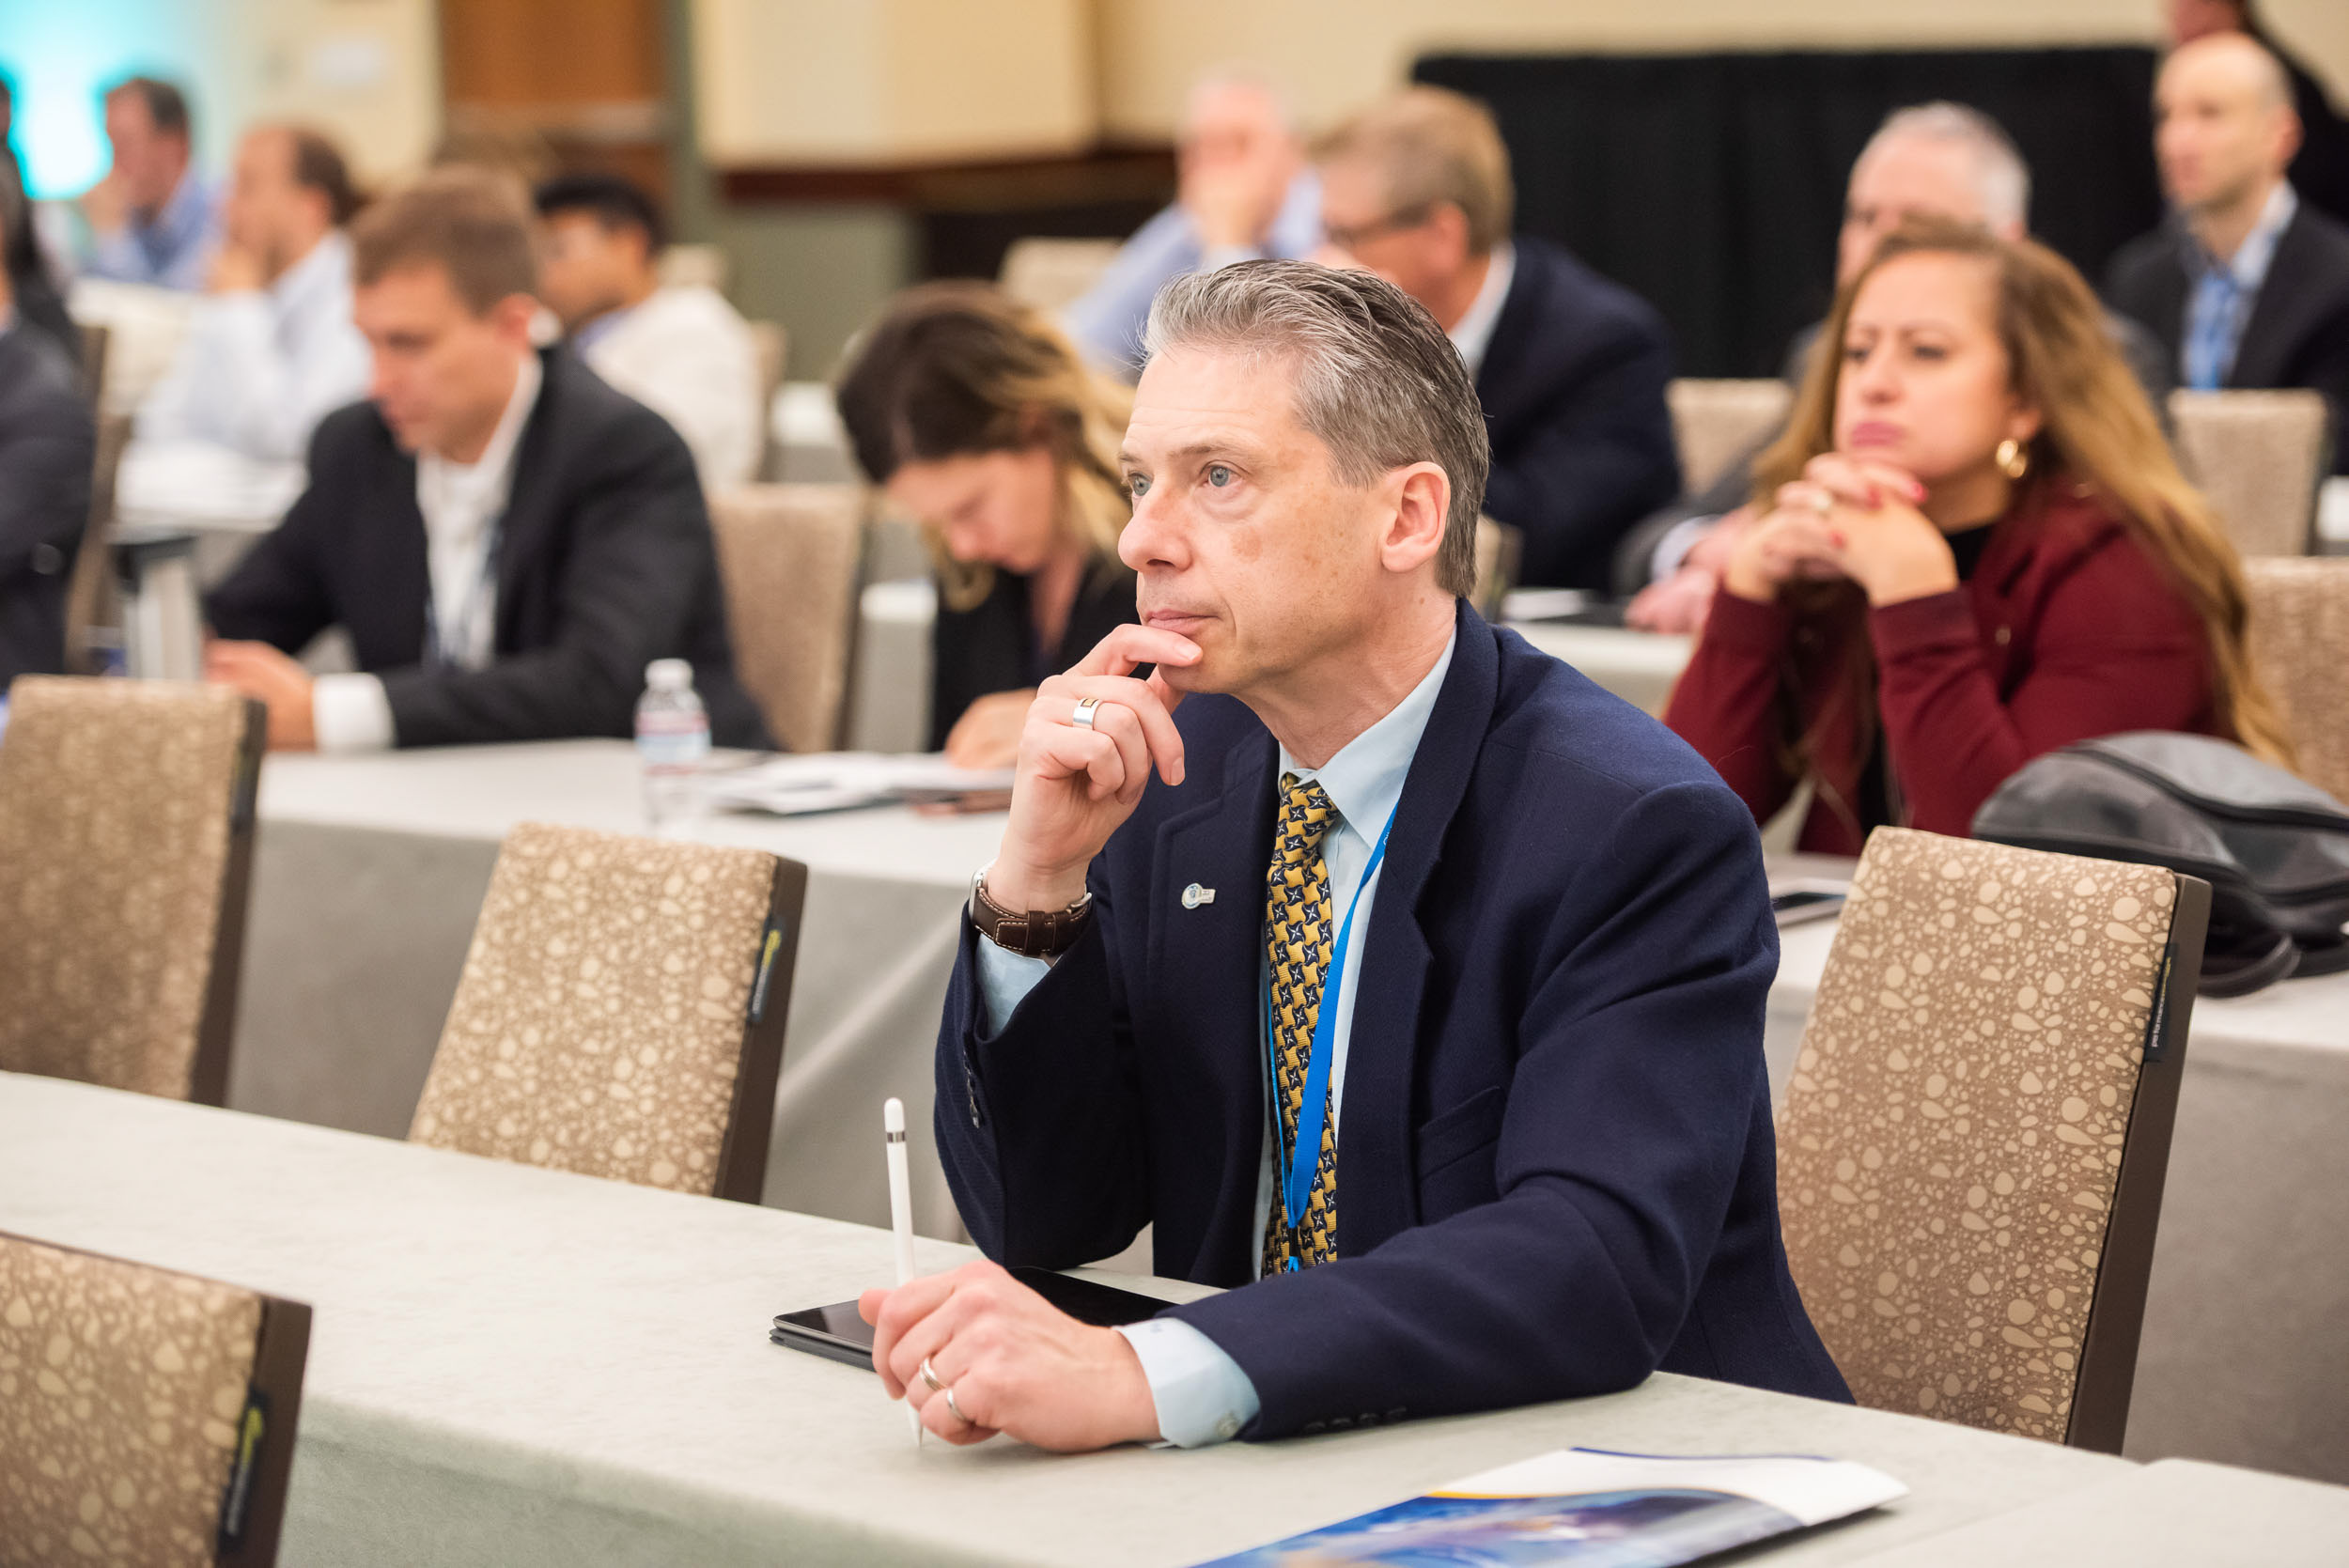 181024 - American Medical Device Summit - mark campbell photography-191_Resized_Resized.jpg